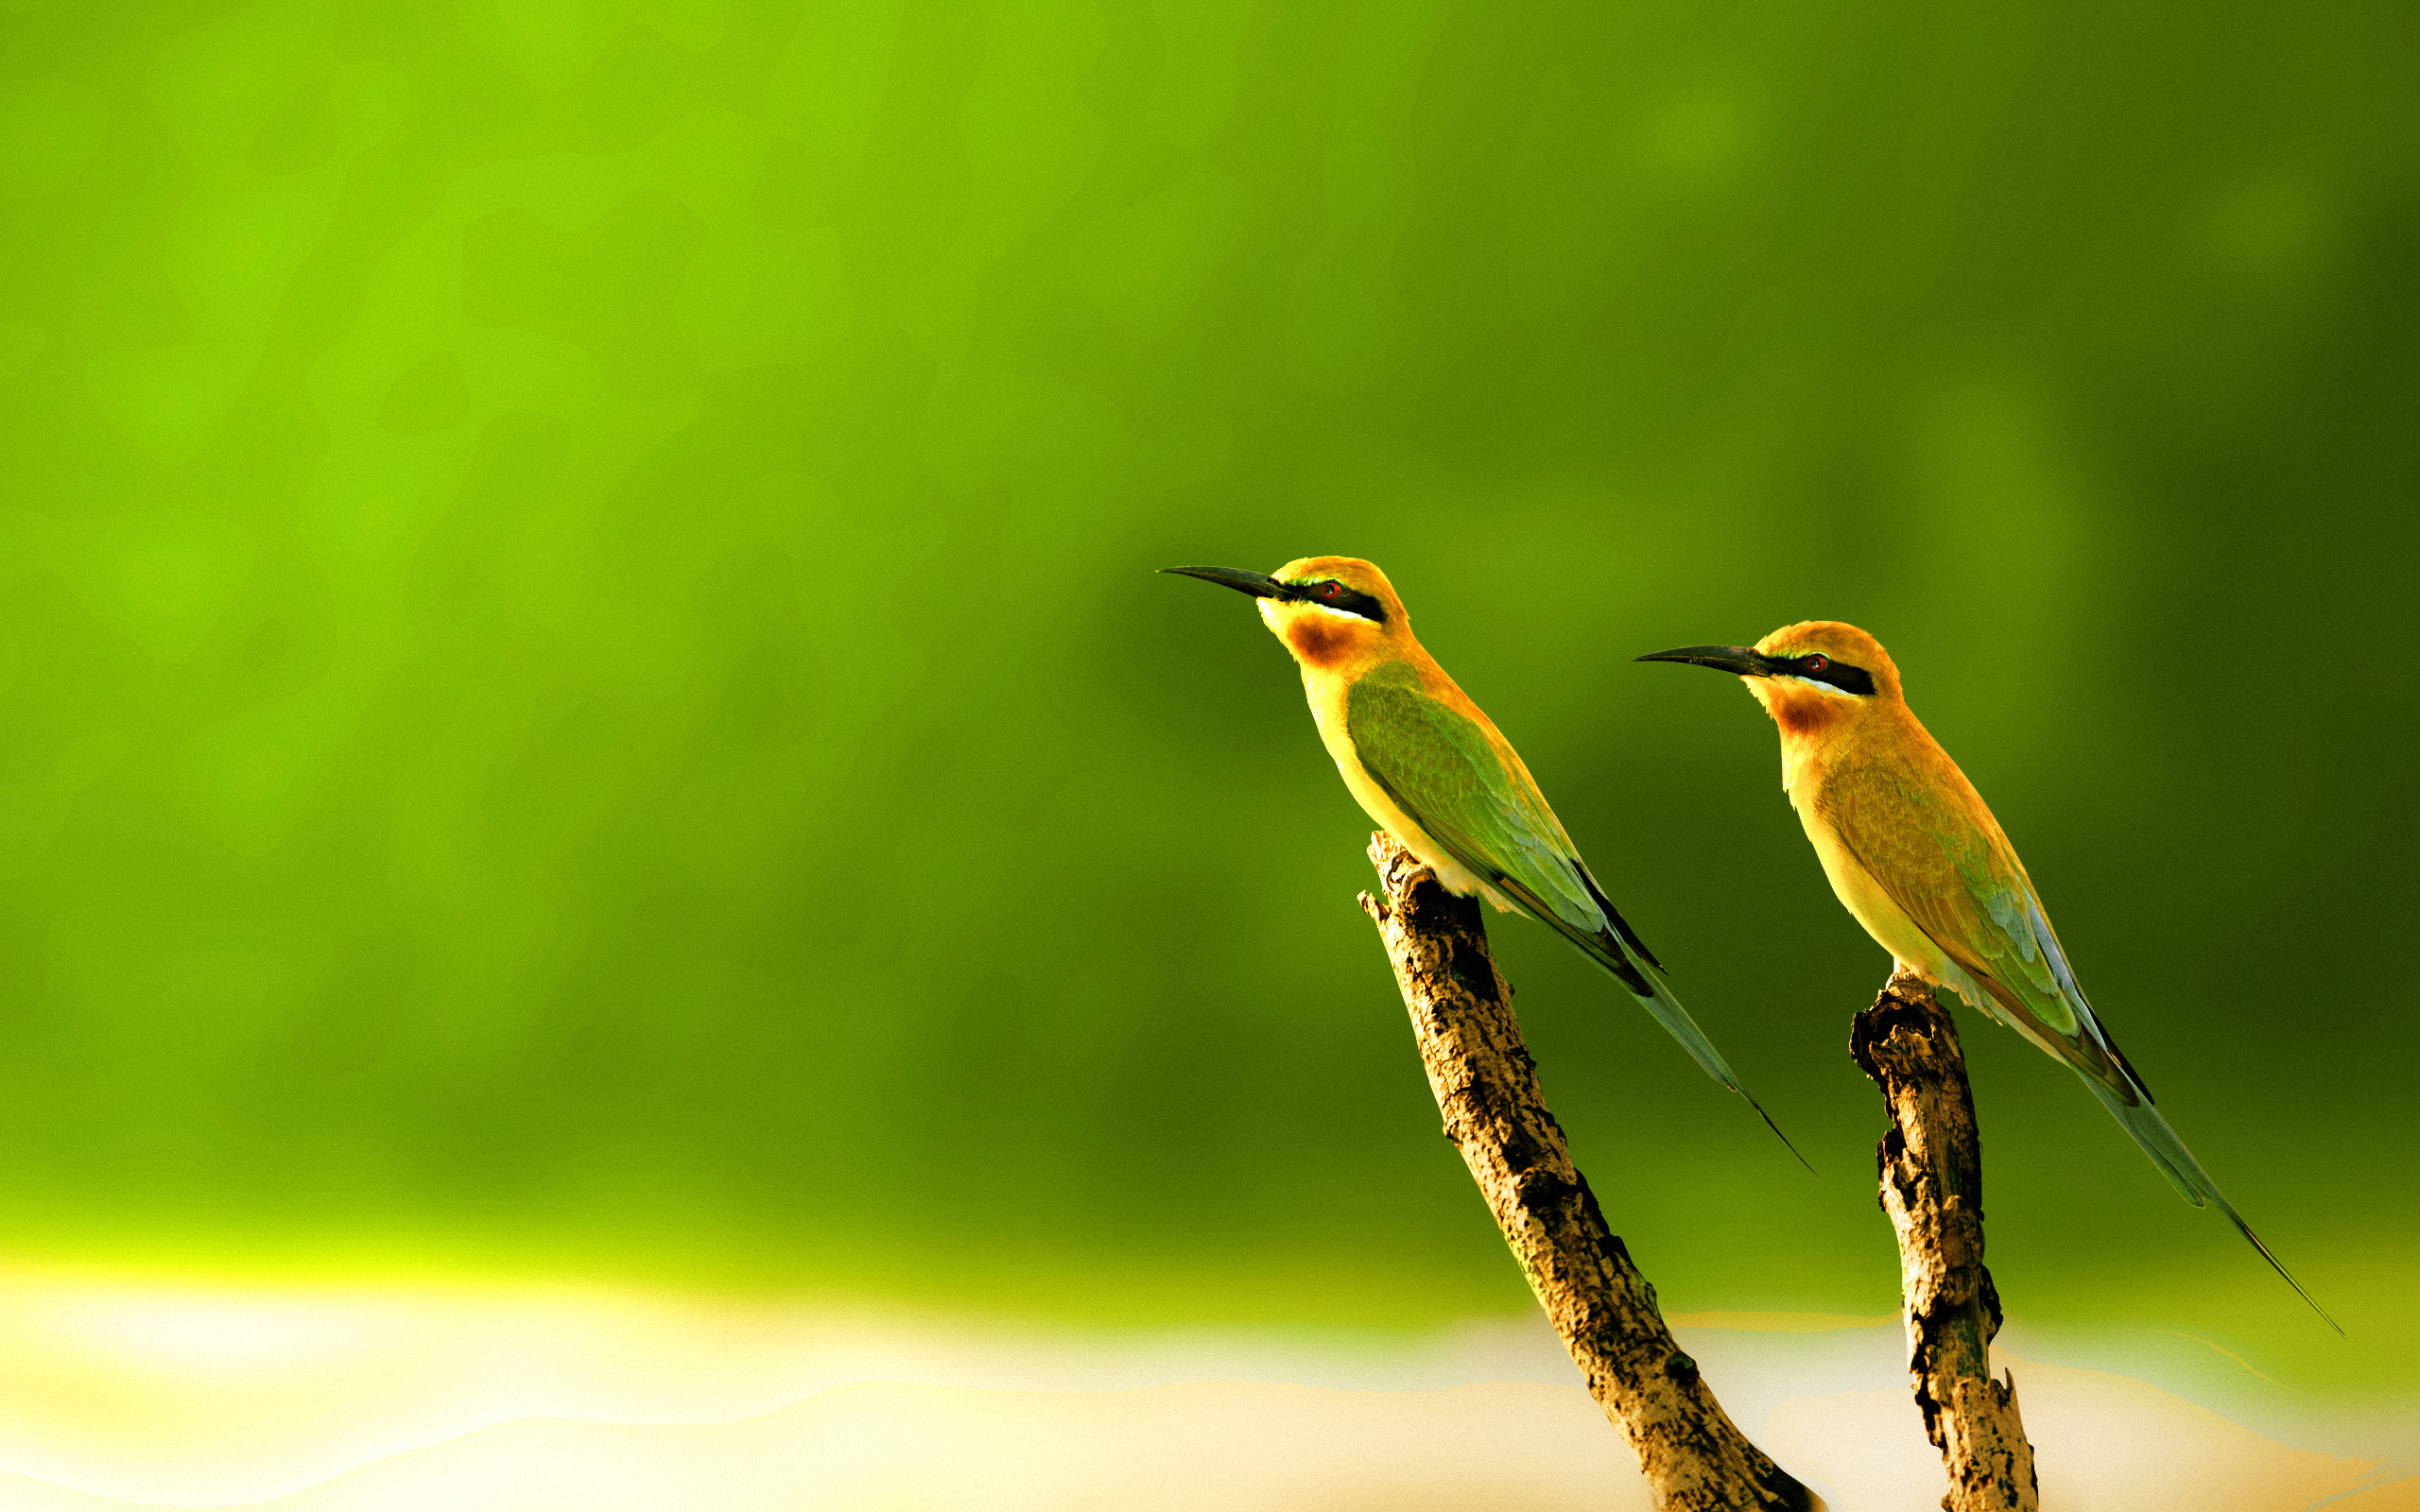 15+ Beautiful Birds Wallpaper Collection [HD Edition] - Stugon